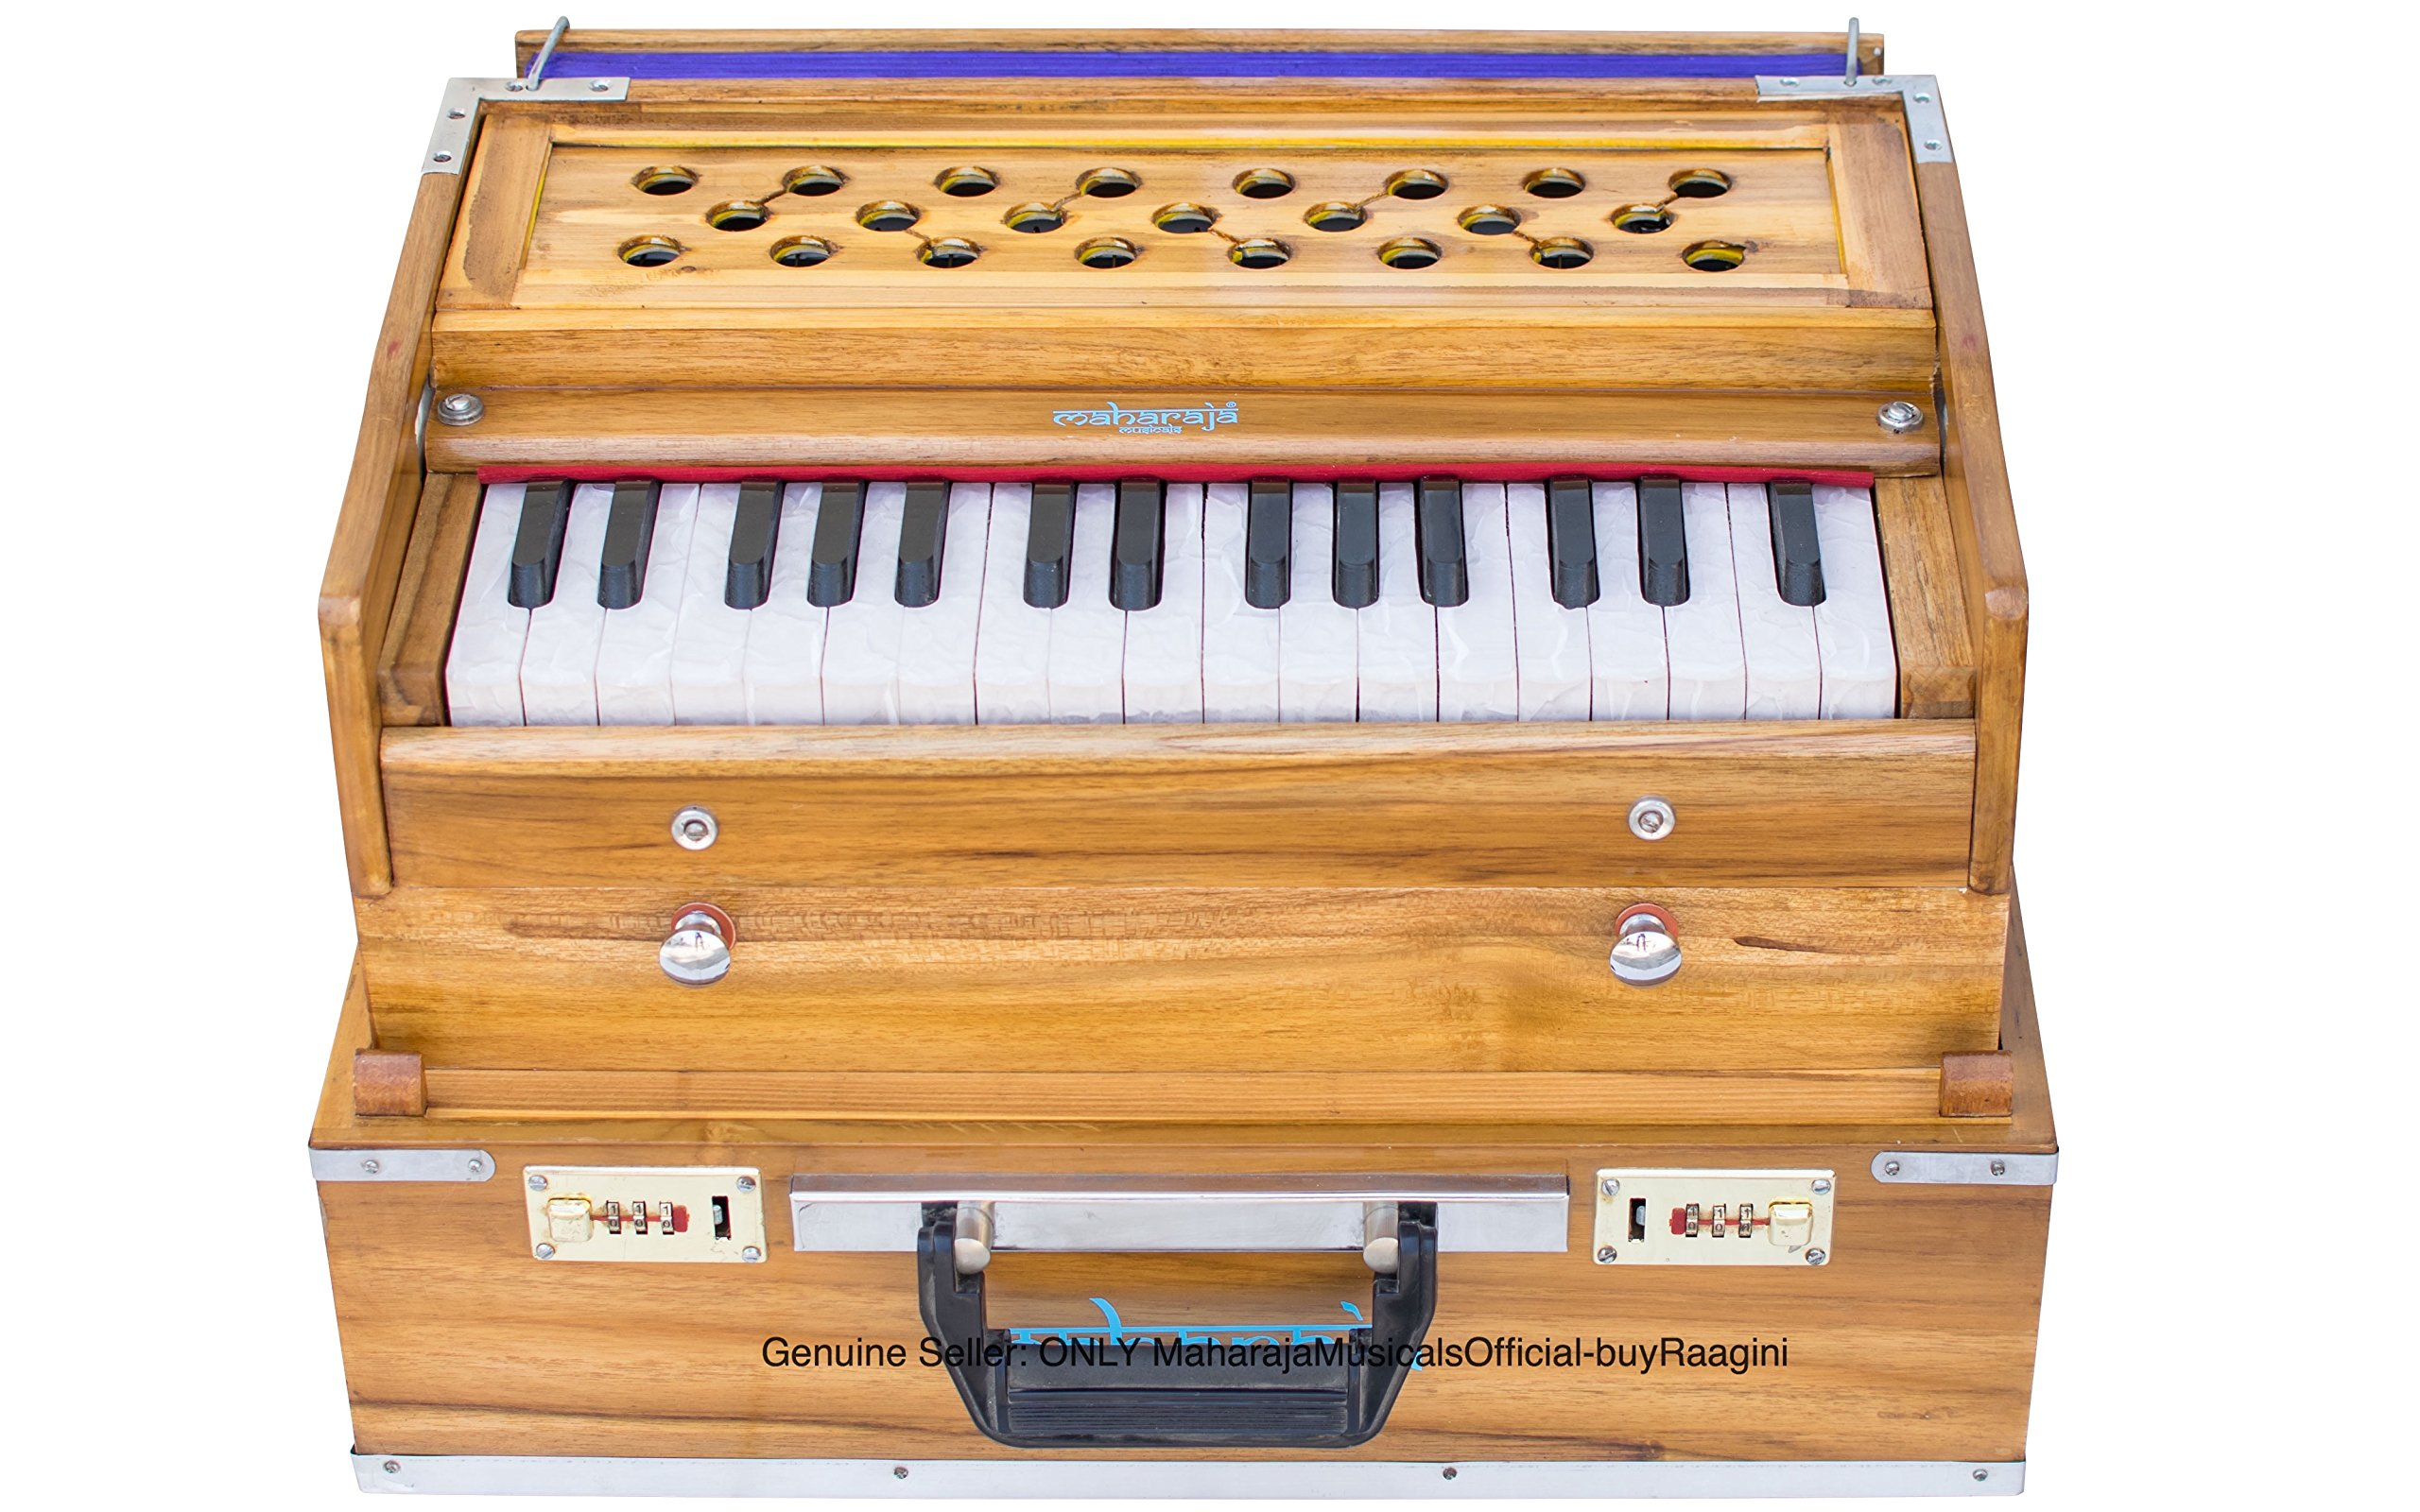 Maharaja Musicals Harmonium, Small, Folding, Double Reed, 34 Keys, Coupler, Tuned To A440, Natural Color, Bag, Book (PDI-EJG)